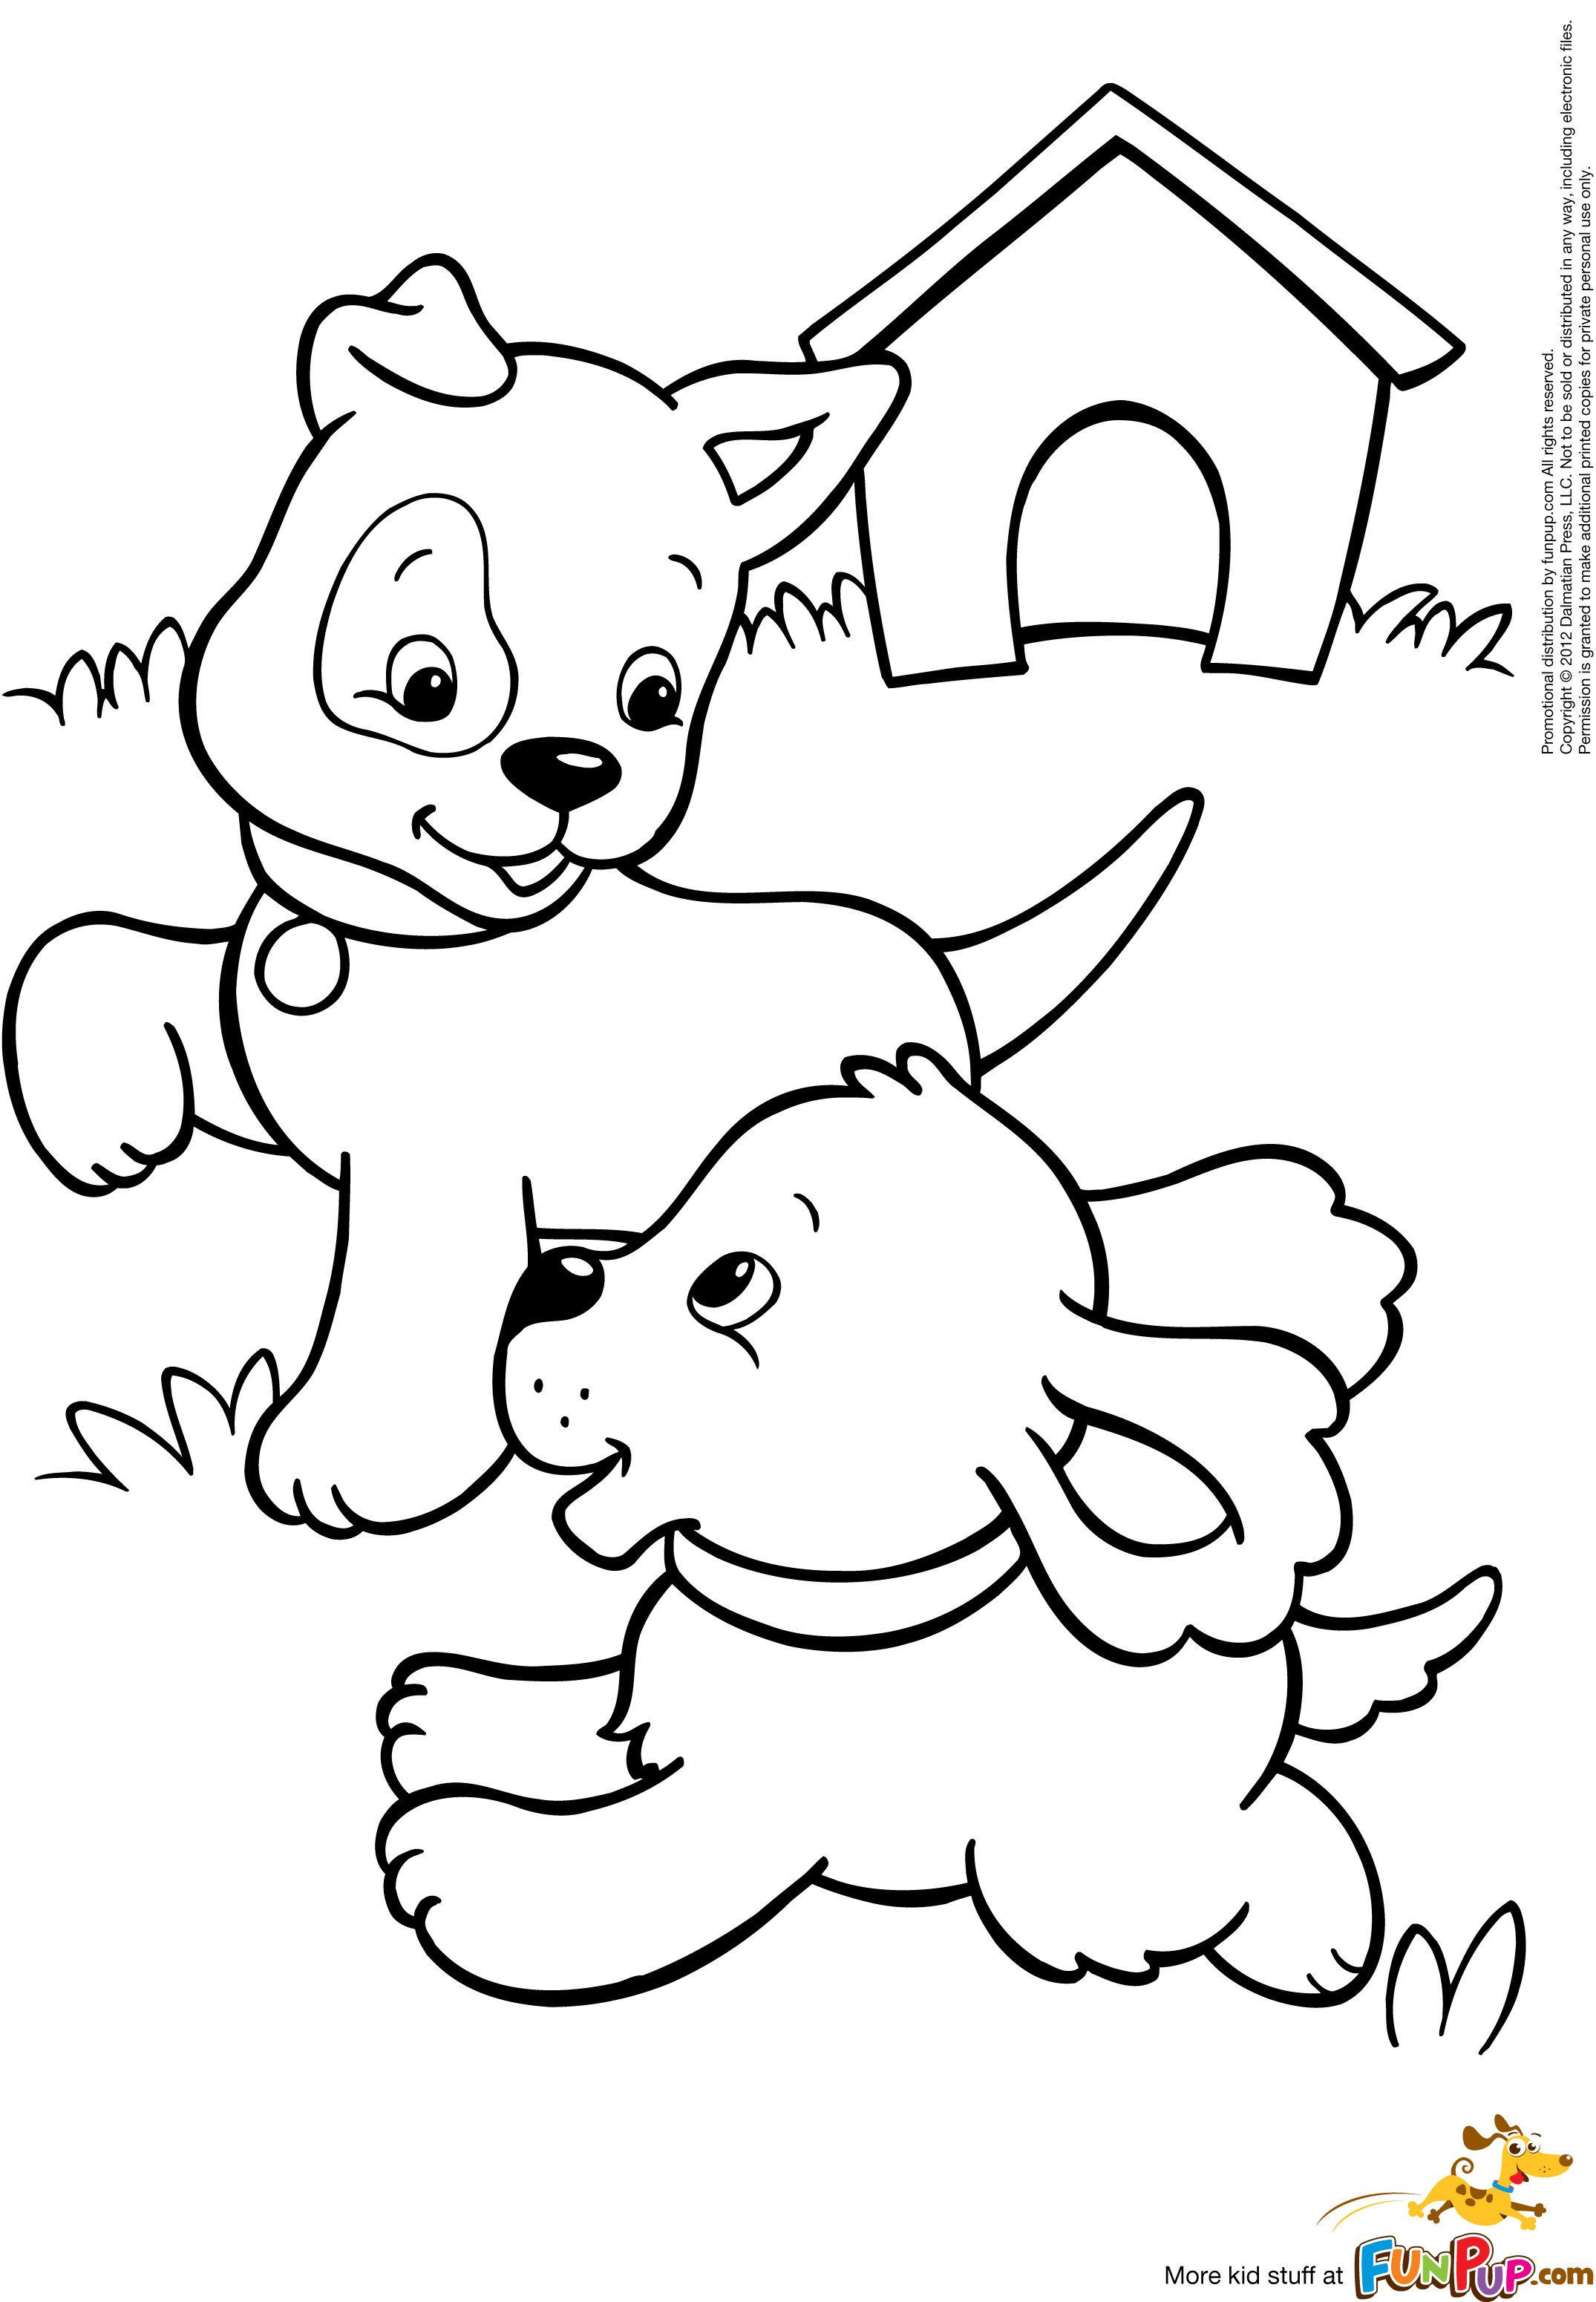 dog pictures to print and colour print download draw your own puppy coloring pages print pictures and to dog colour